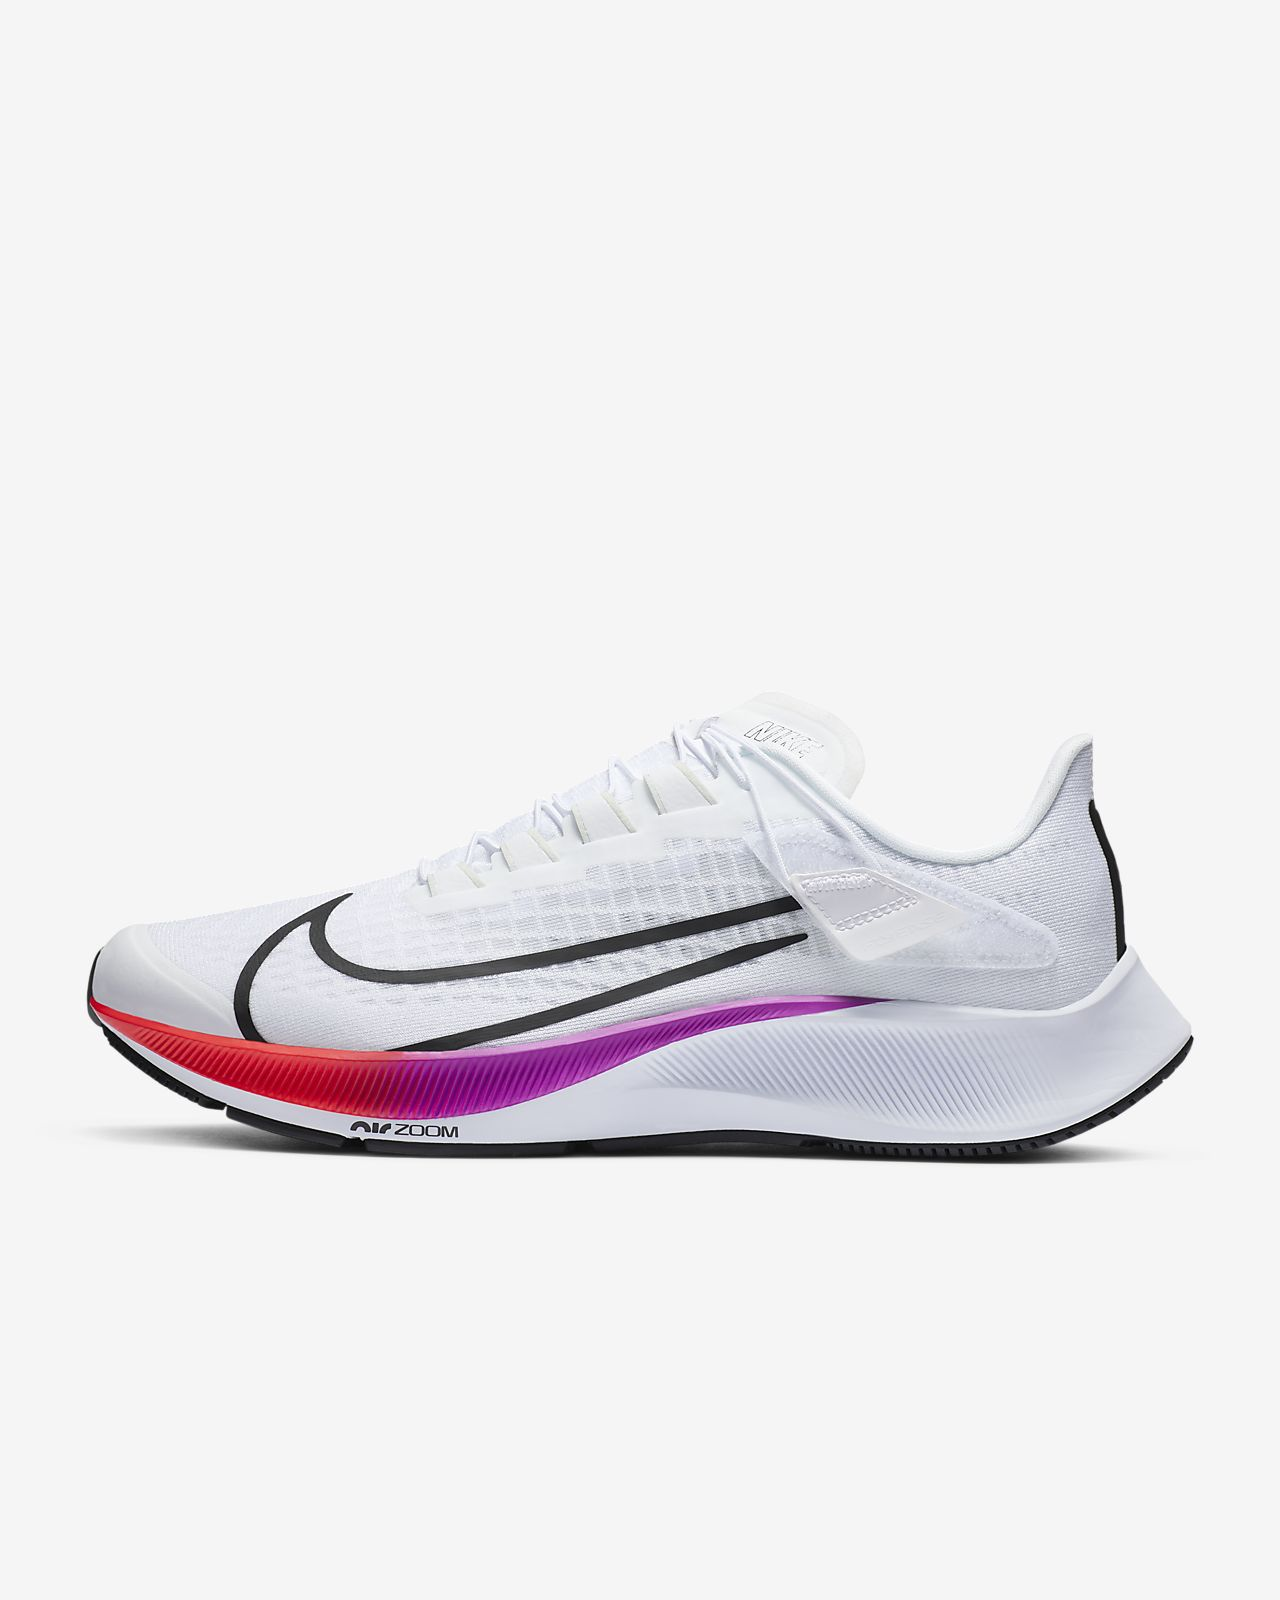 Nike Air Zoom Pegasus 37 FlyEase Men's Running Shoe